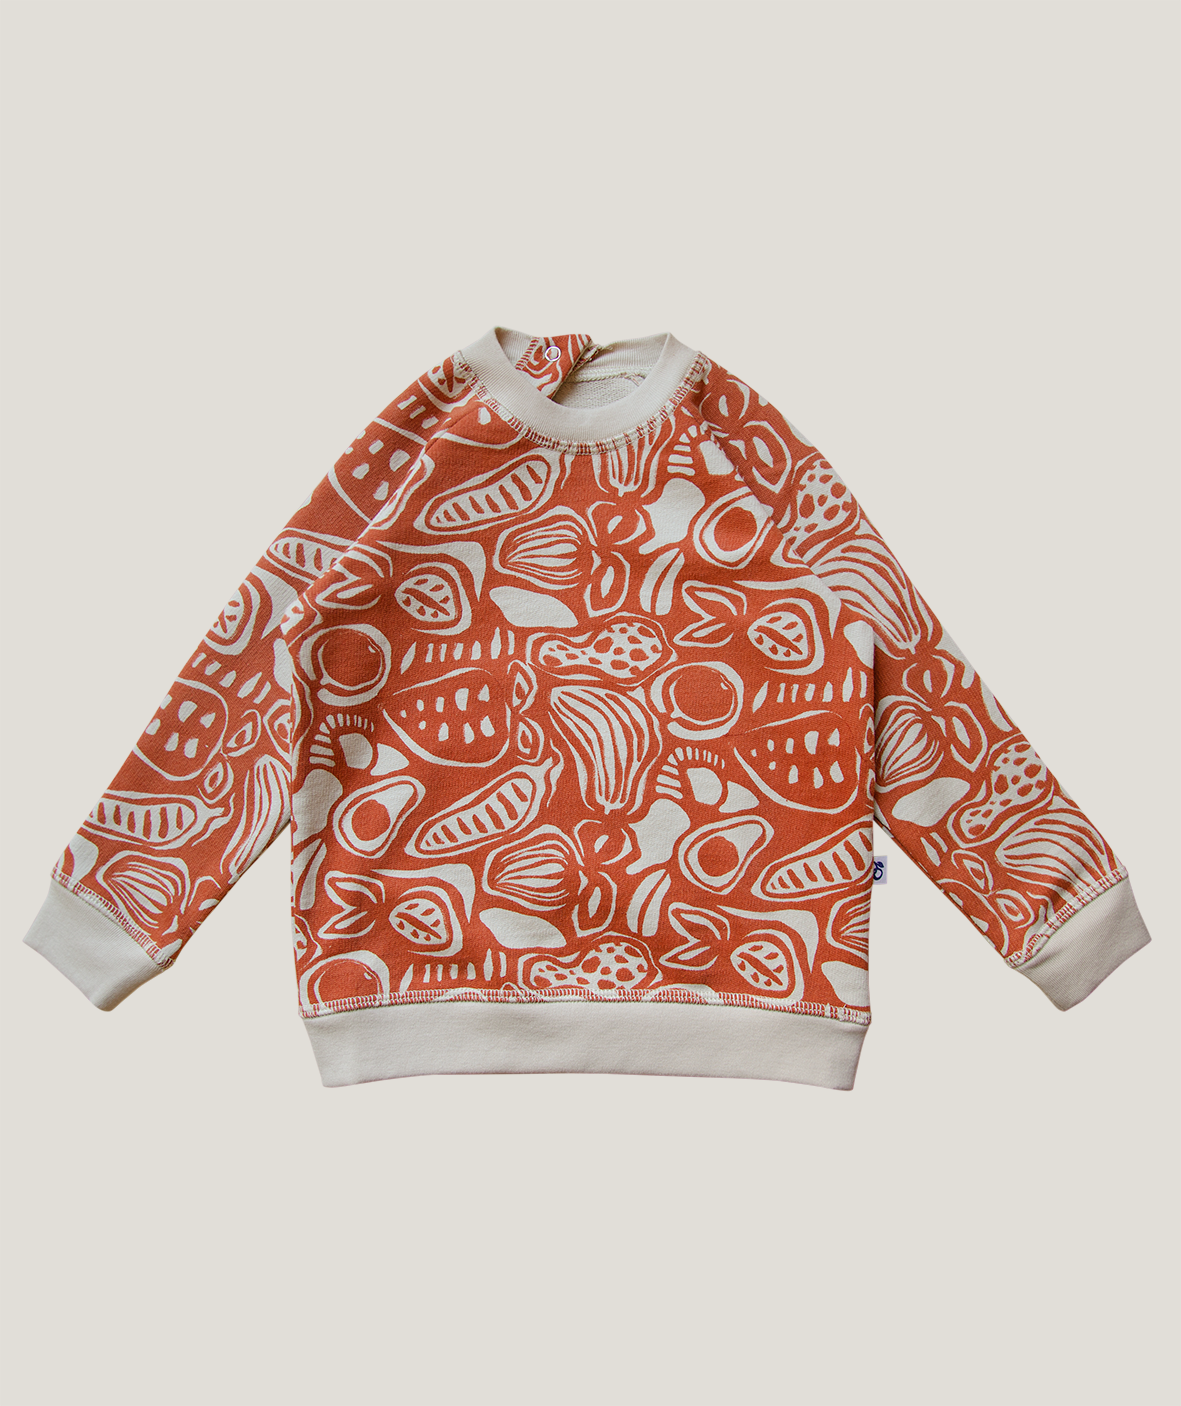 Harvest Sweatshirt, Burnt Ochre